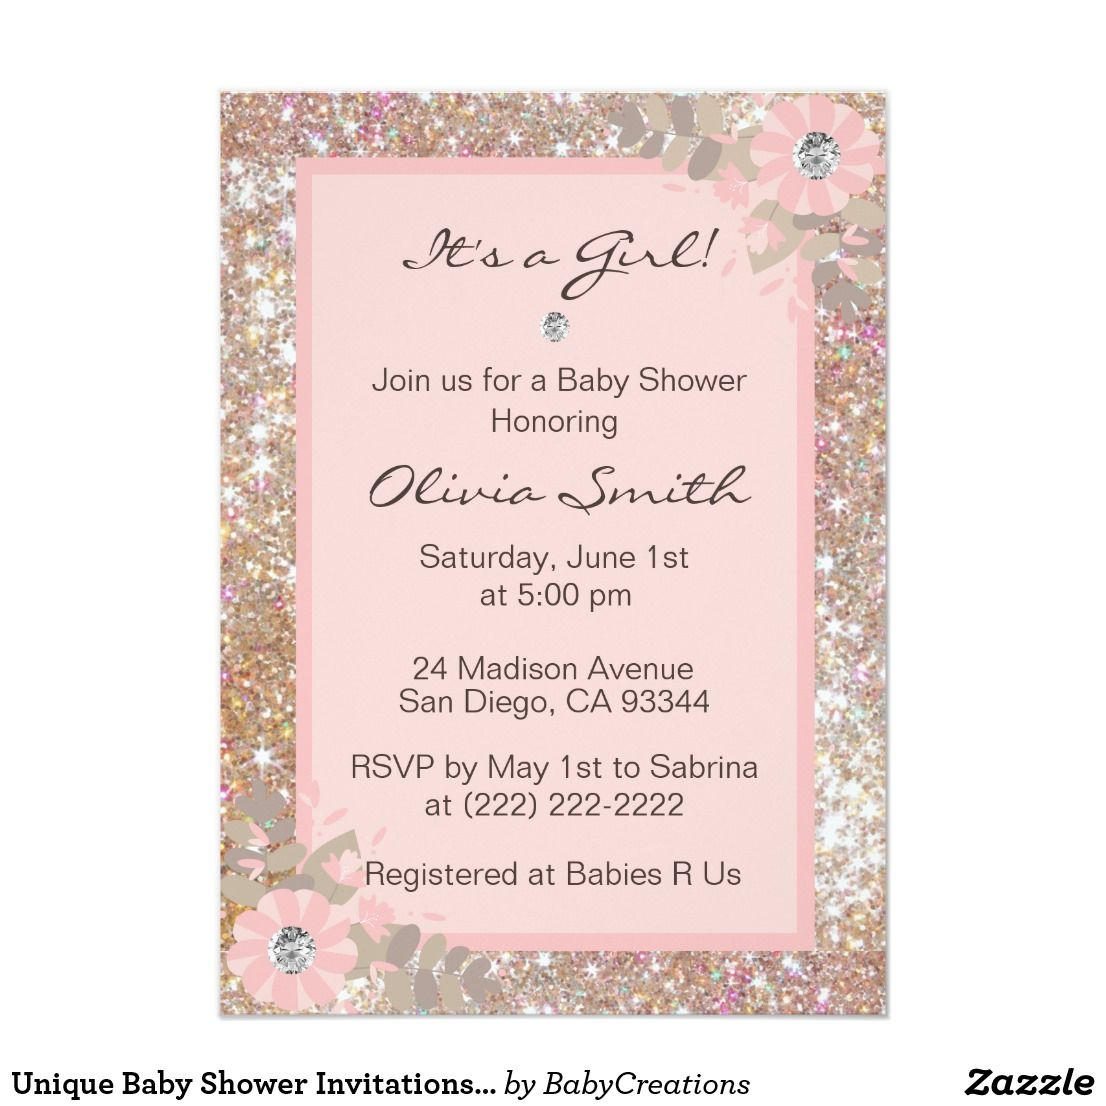 Unique Baby Shower Invitations Girls - Pink,Brown | Unique baby ...